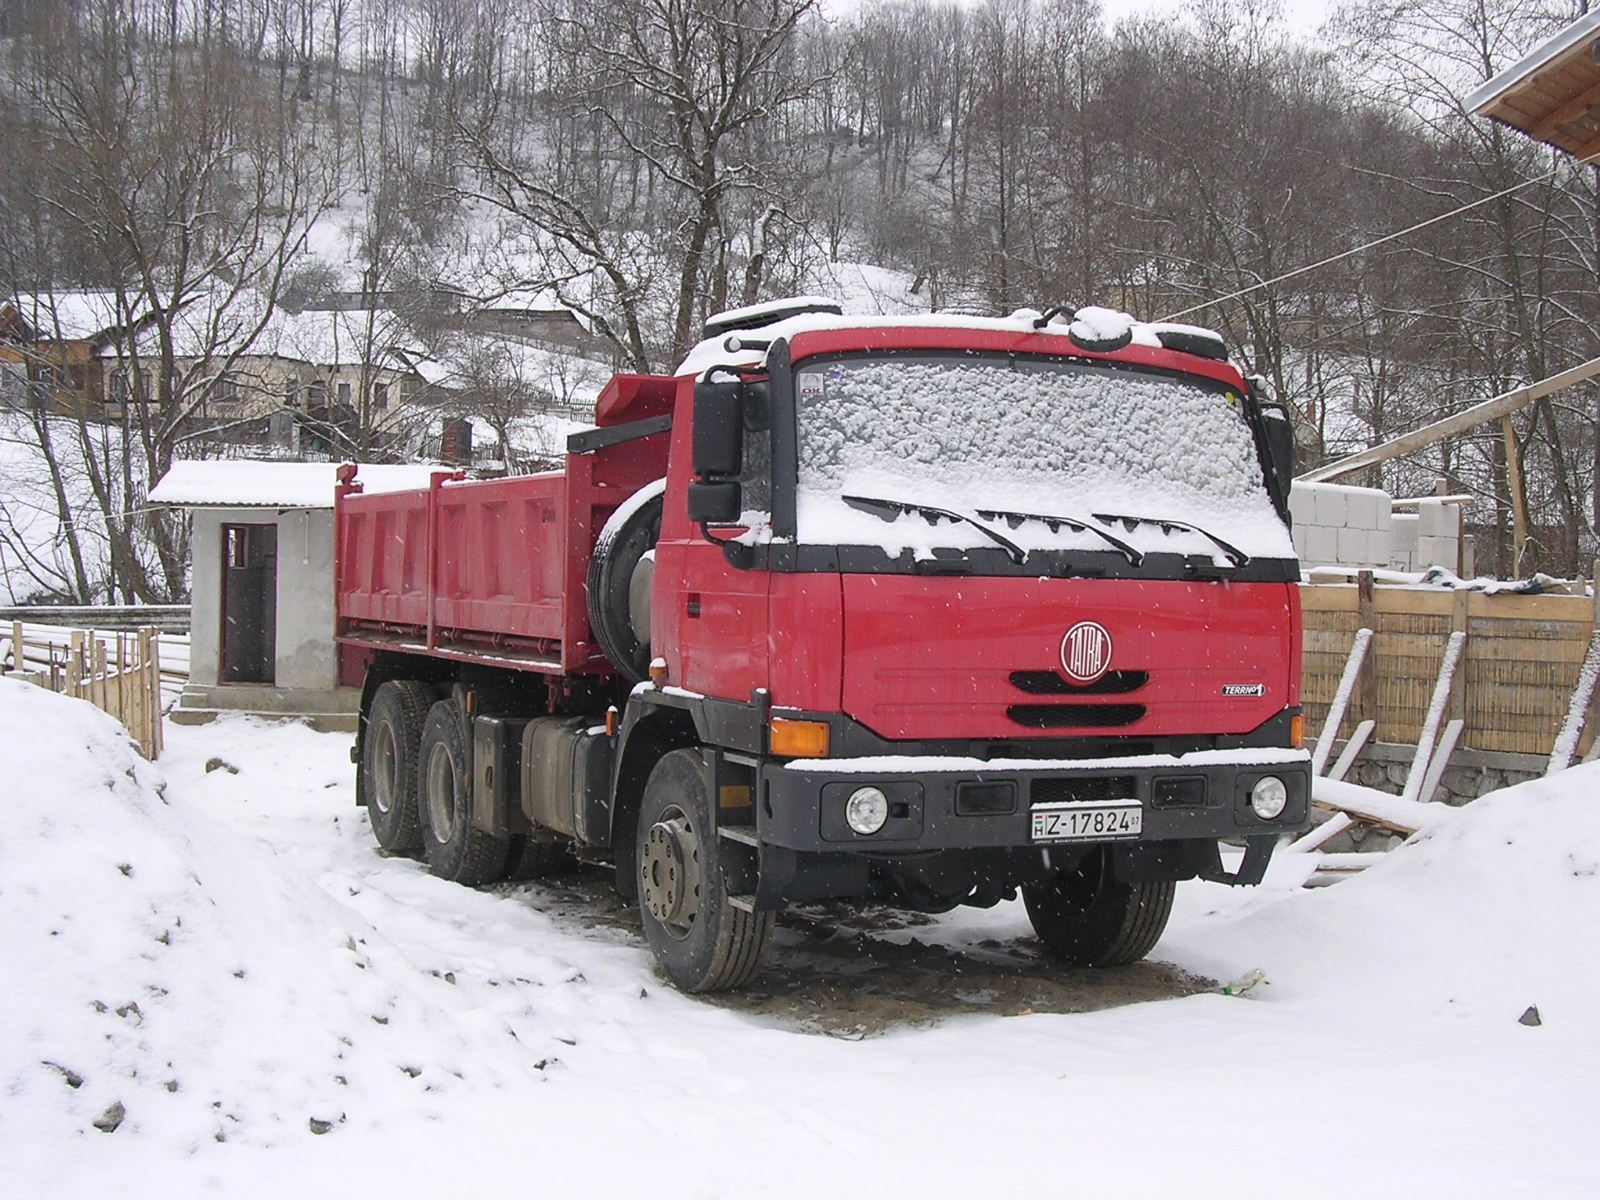 Tatra 815 TERRN°1 Arefu Romania snow | Flickr - Photo Sharing!